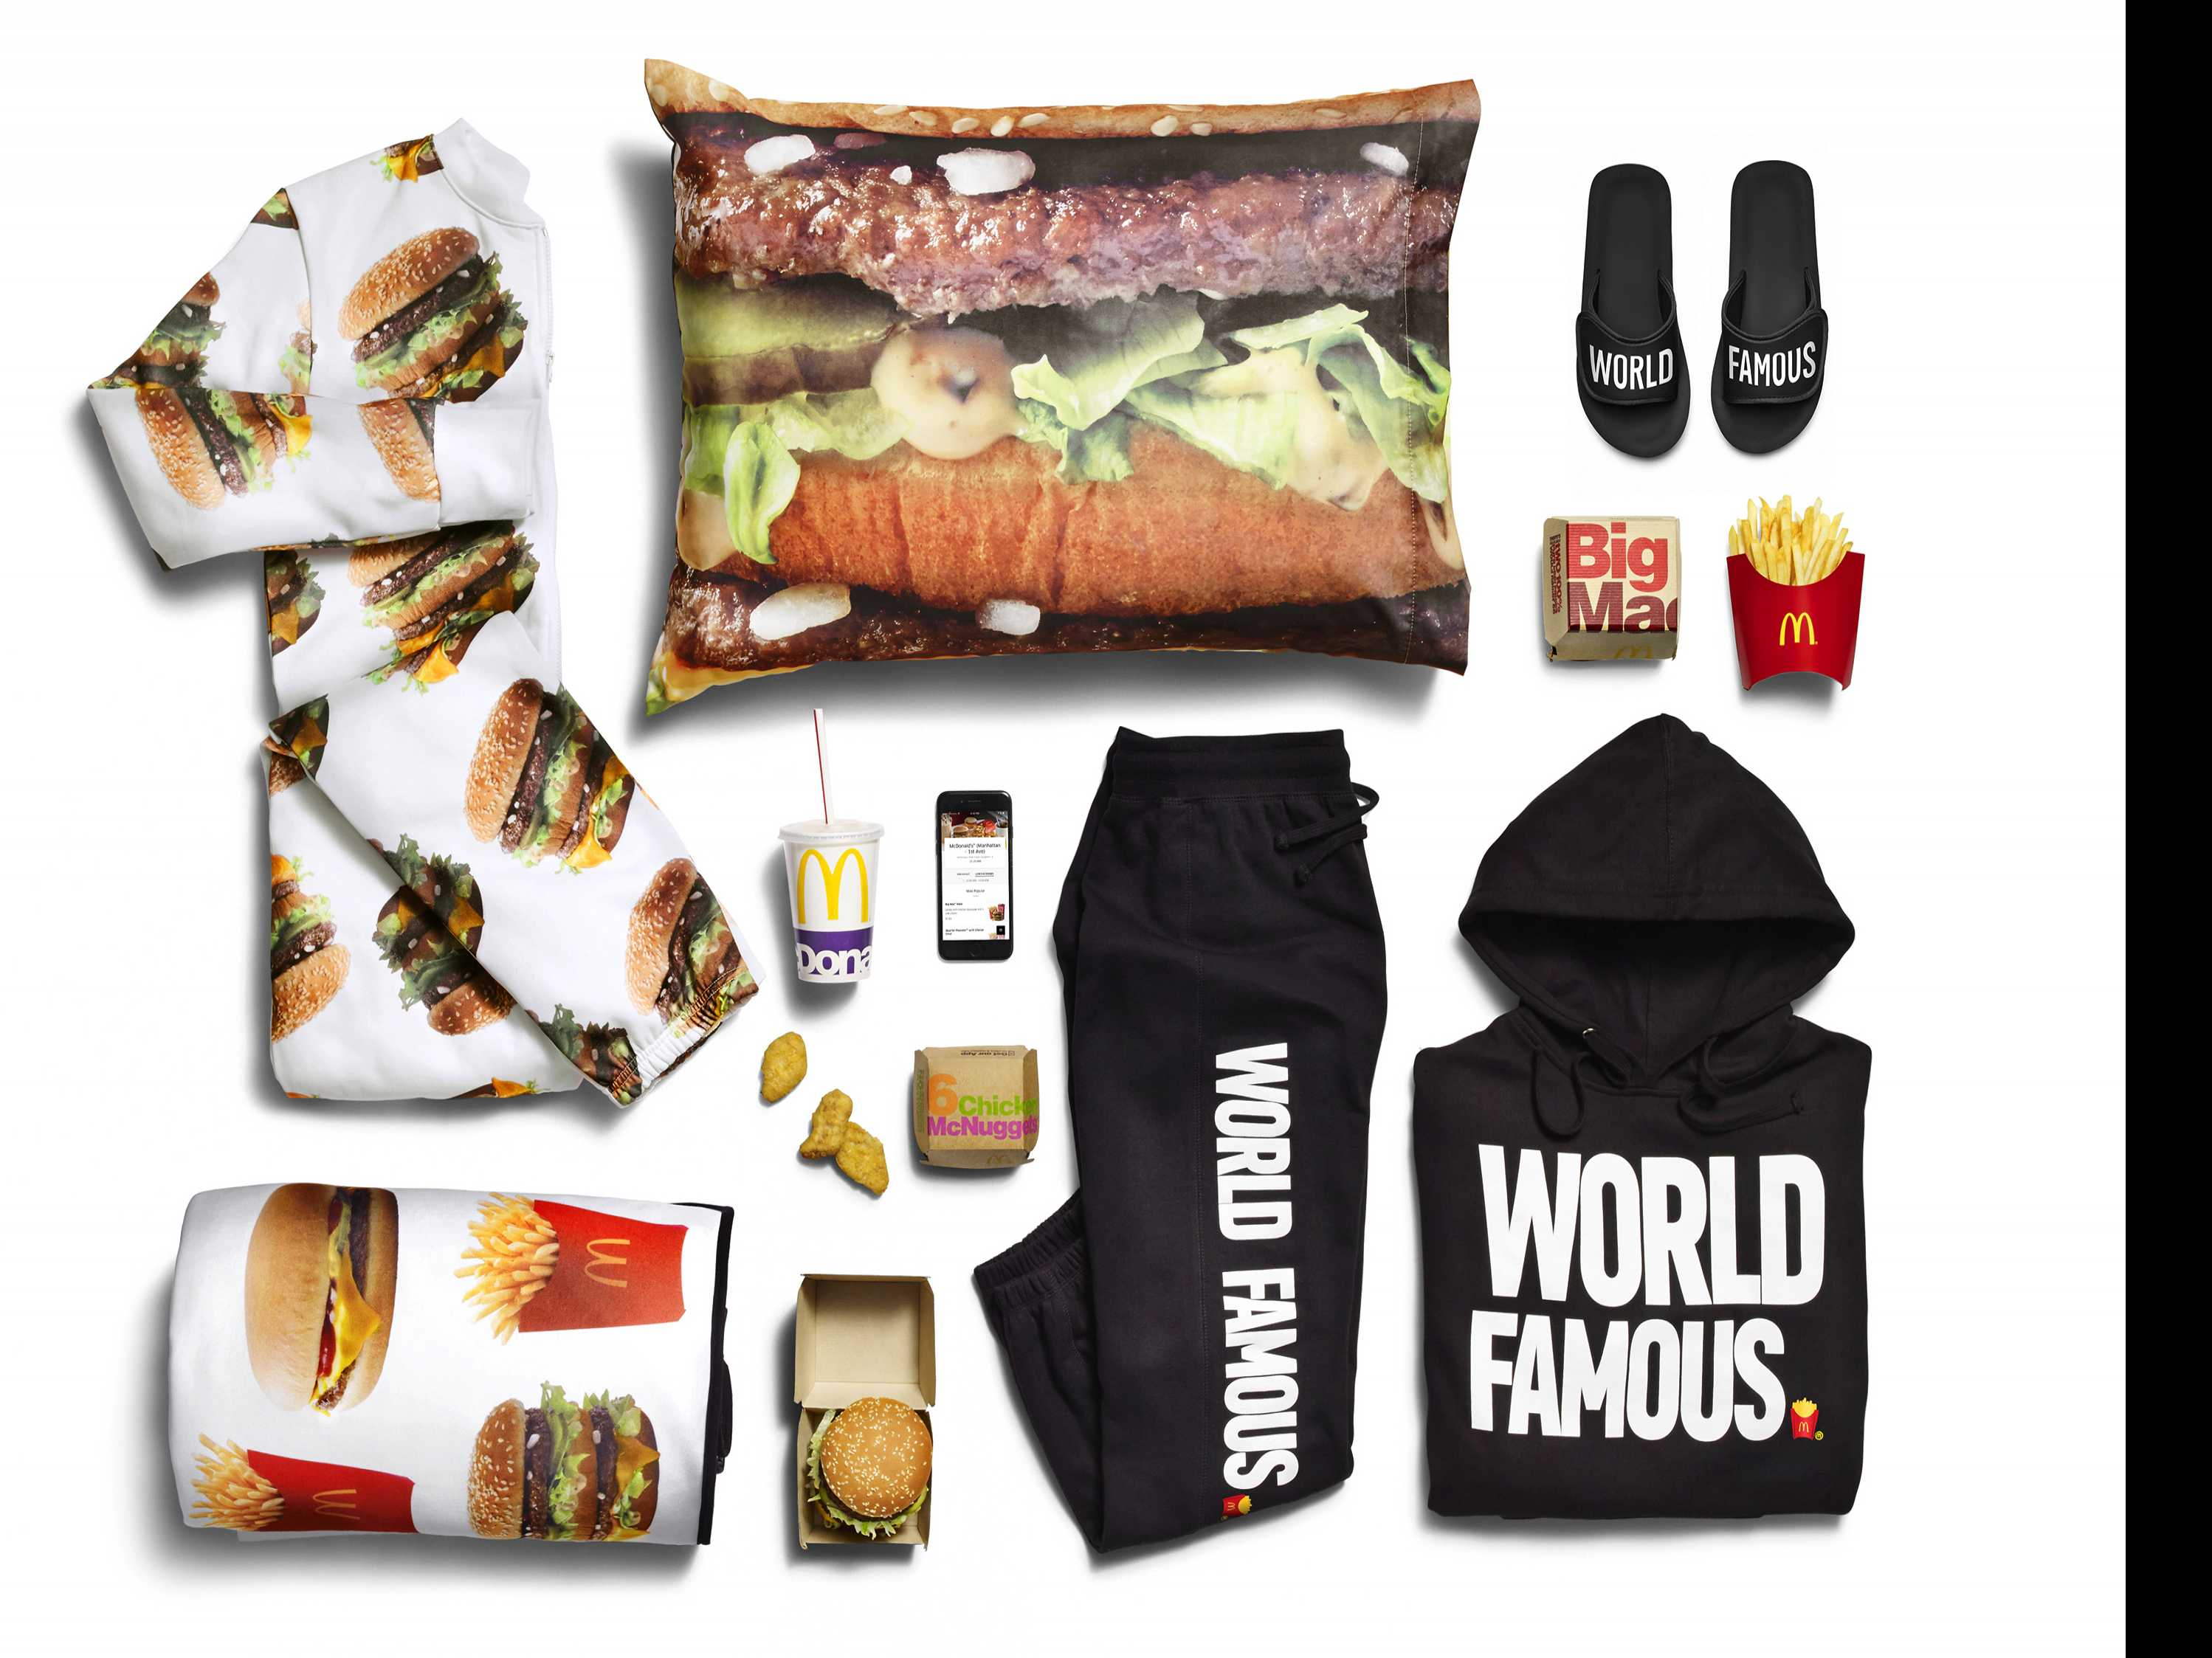 McDonald's Adds Big Mac Onesie and Sweatsuit to Delivery Items